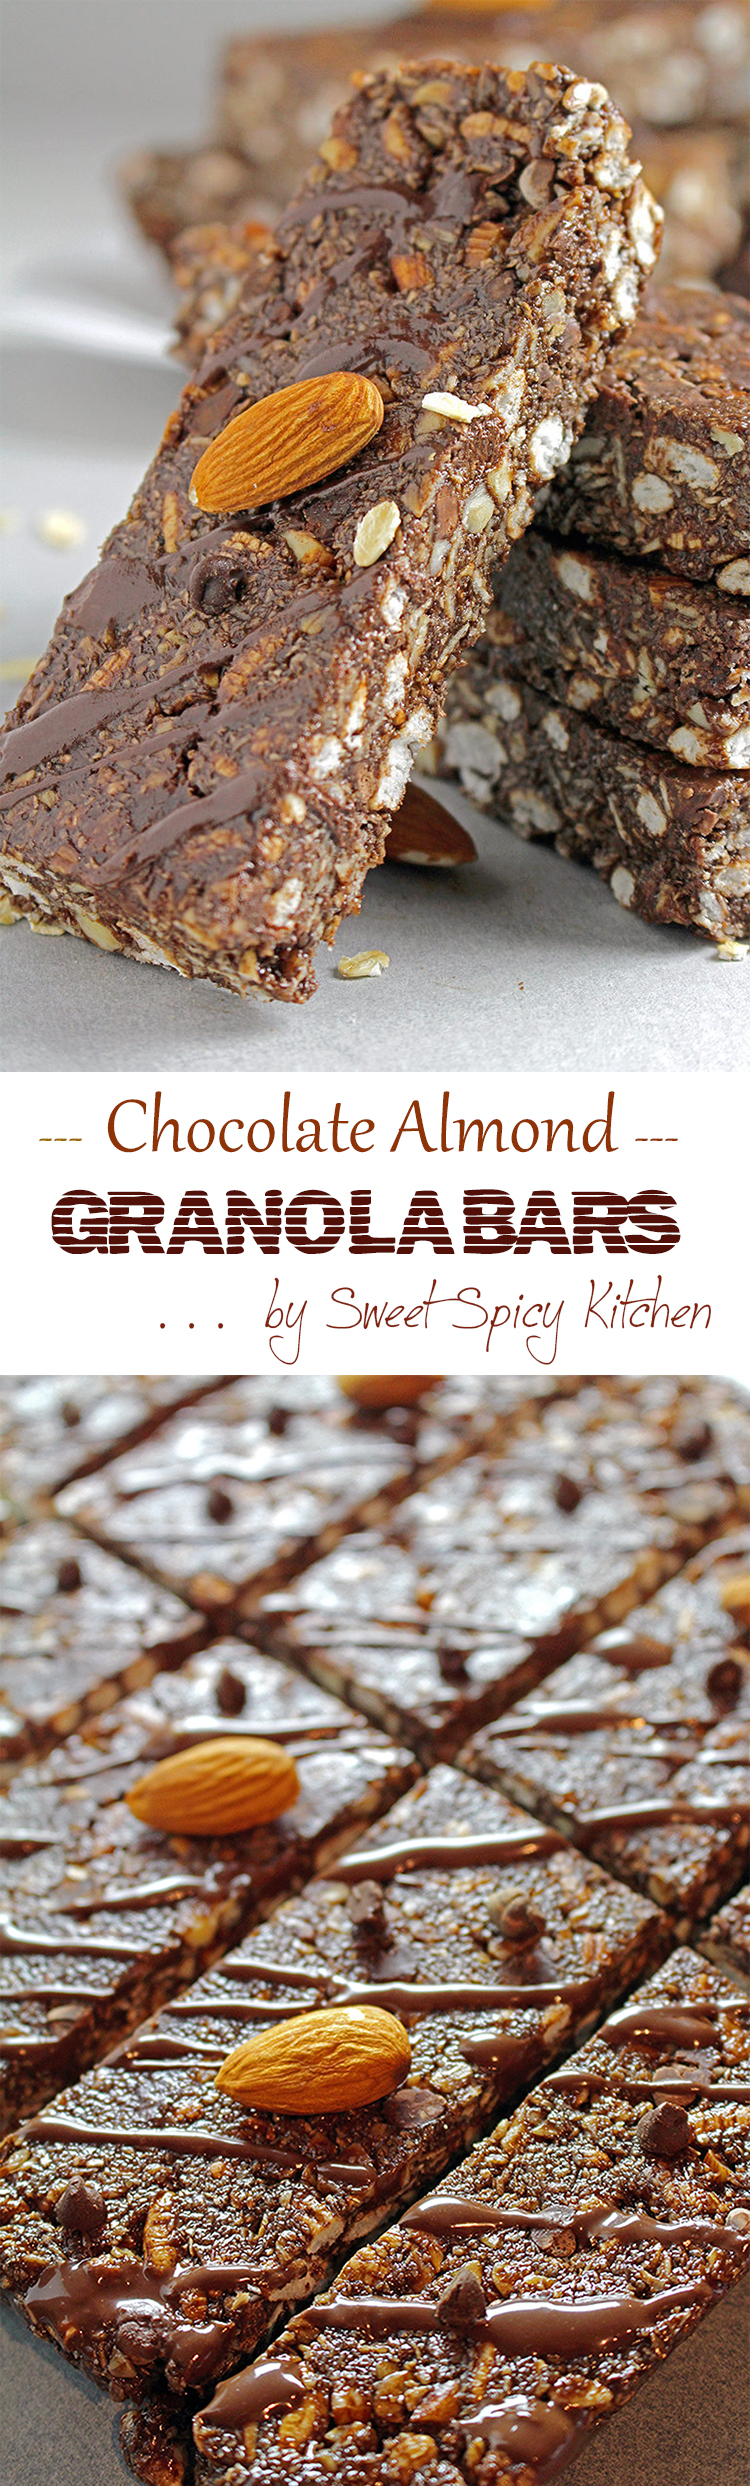 Untitled-157 Chocolate Almond Granola Bars